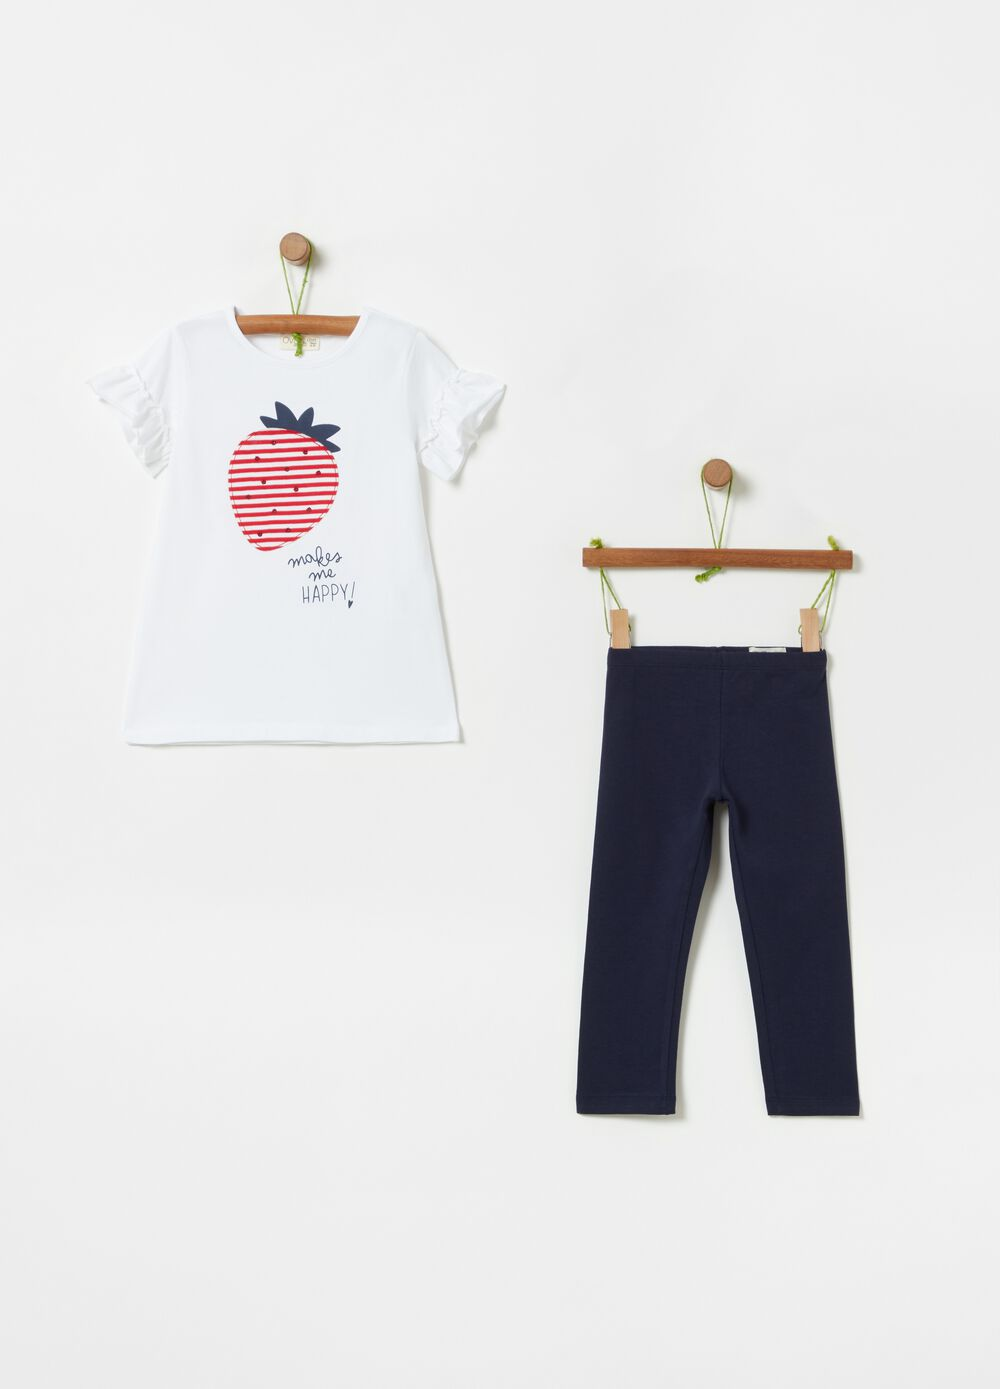 Jogging set with T-shirt and pants with print